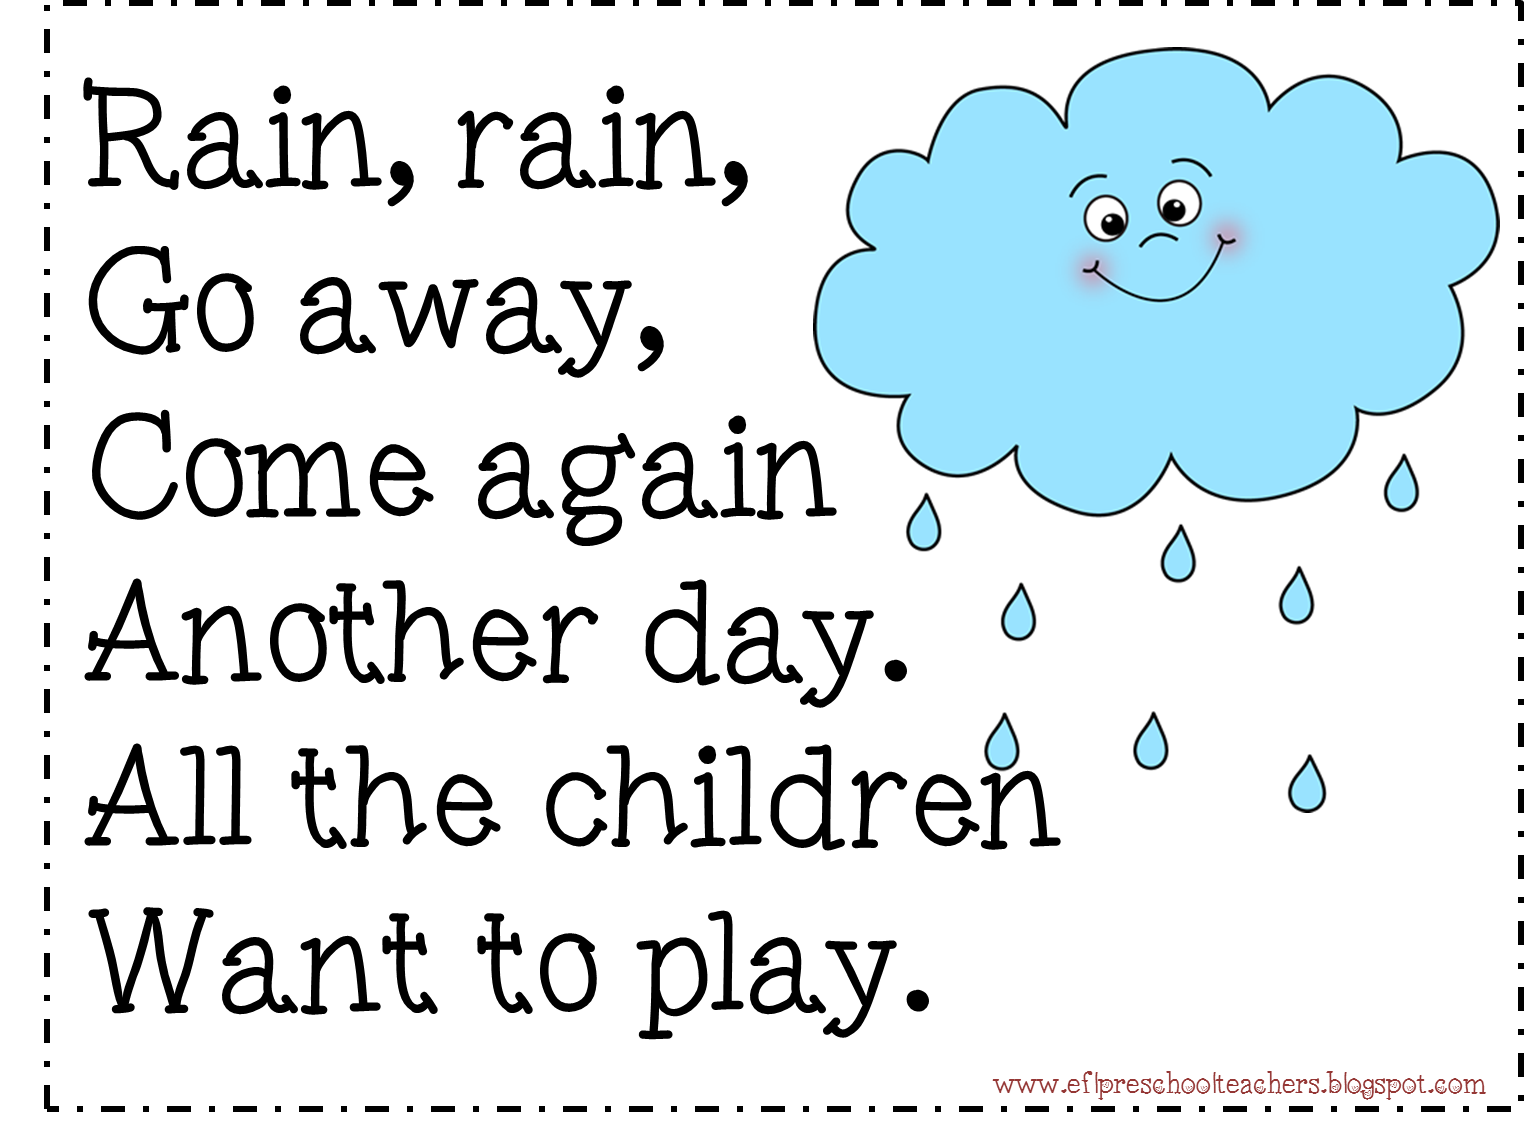 Esl Efl Preschool Teachers Weather Blog